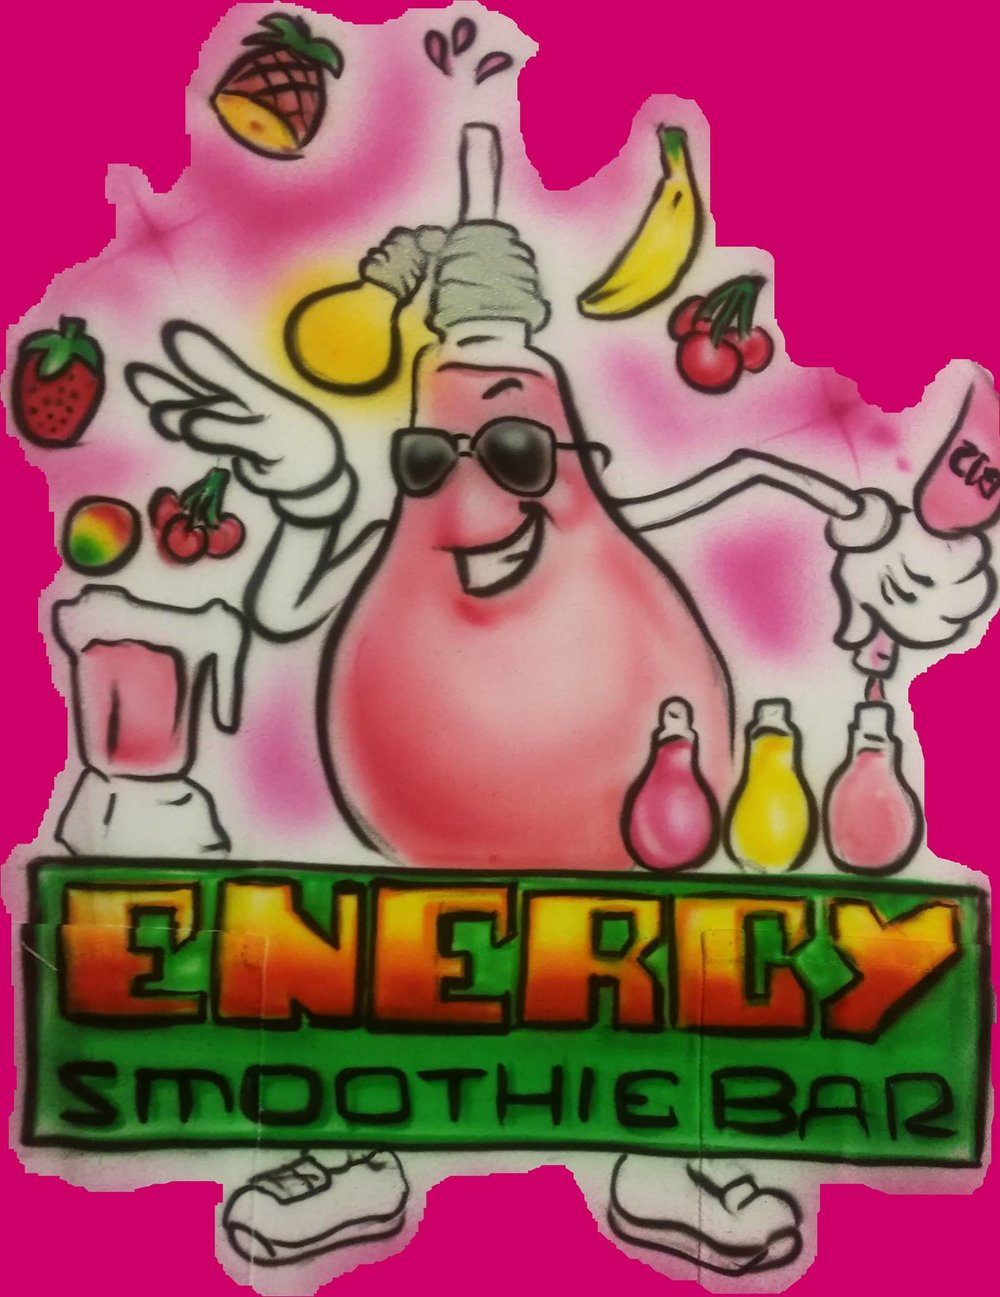 - Energy Smoothie Bar serves ice cold all natural smoothies and juices that were a hit this past year!